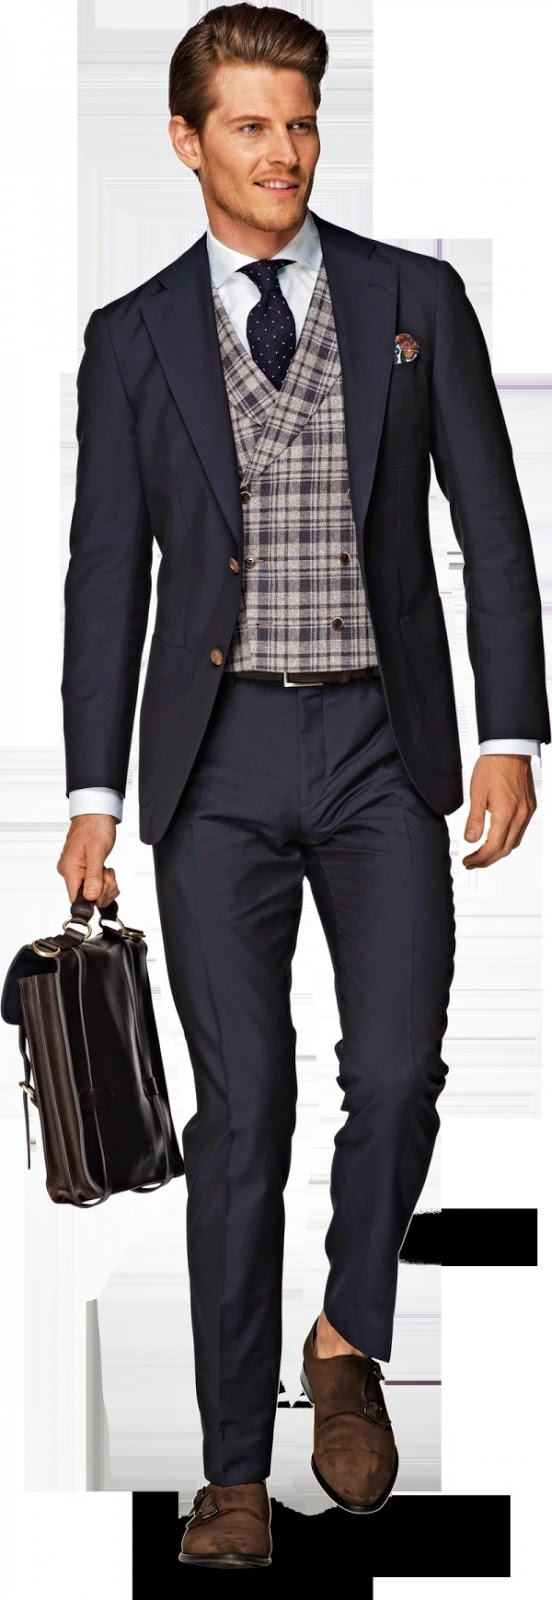 LATEST FASHION & STYLES AROUND THE WORLD: 2015 Men's Suits